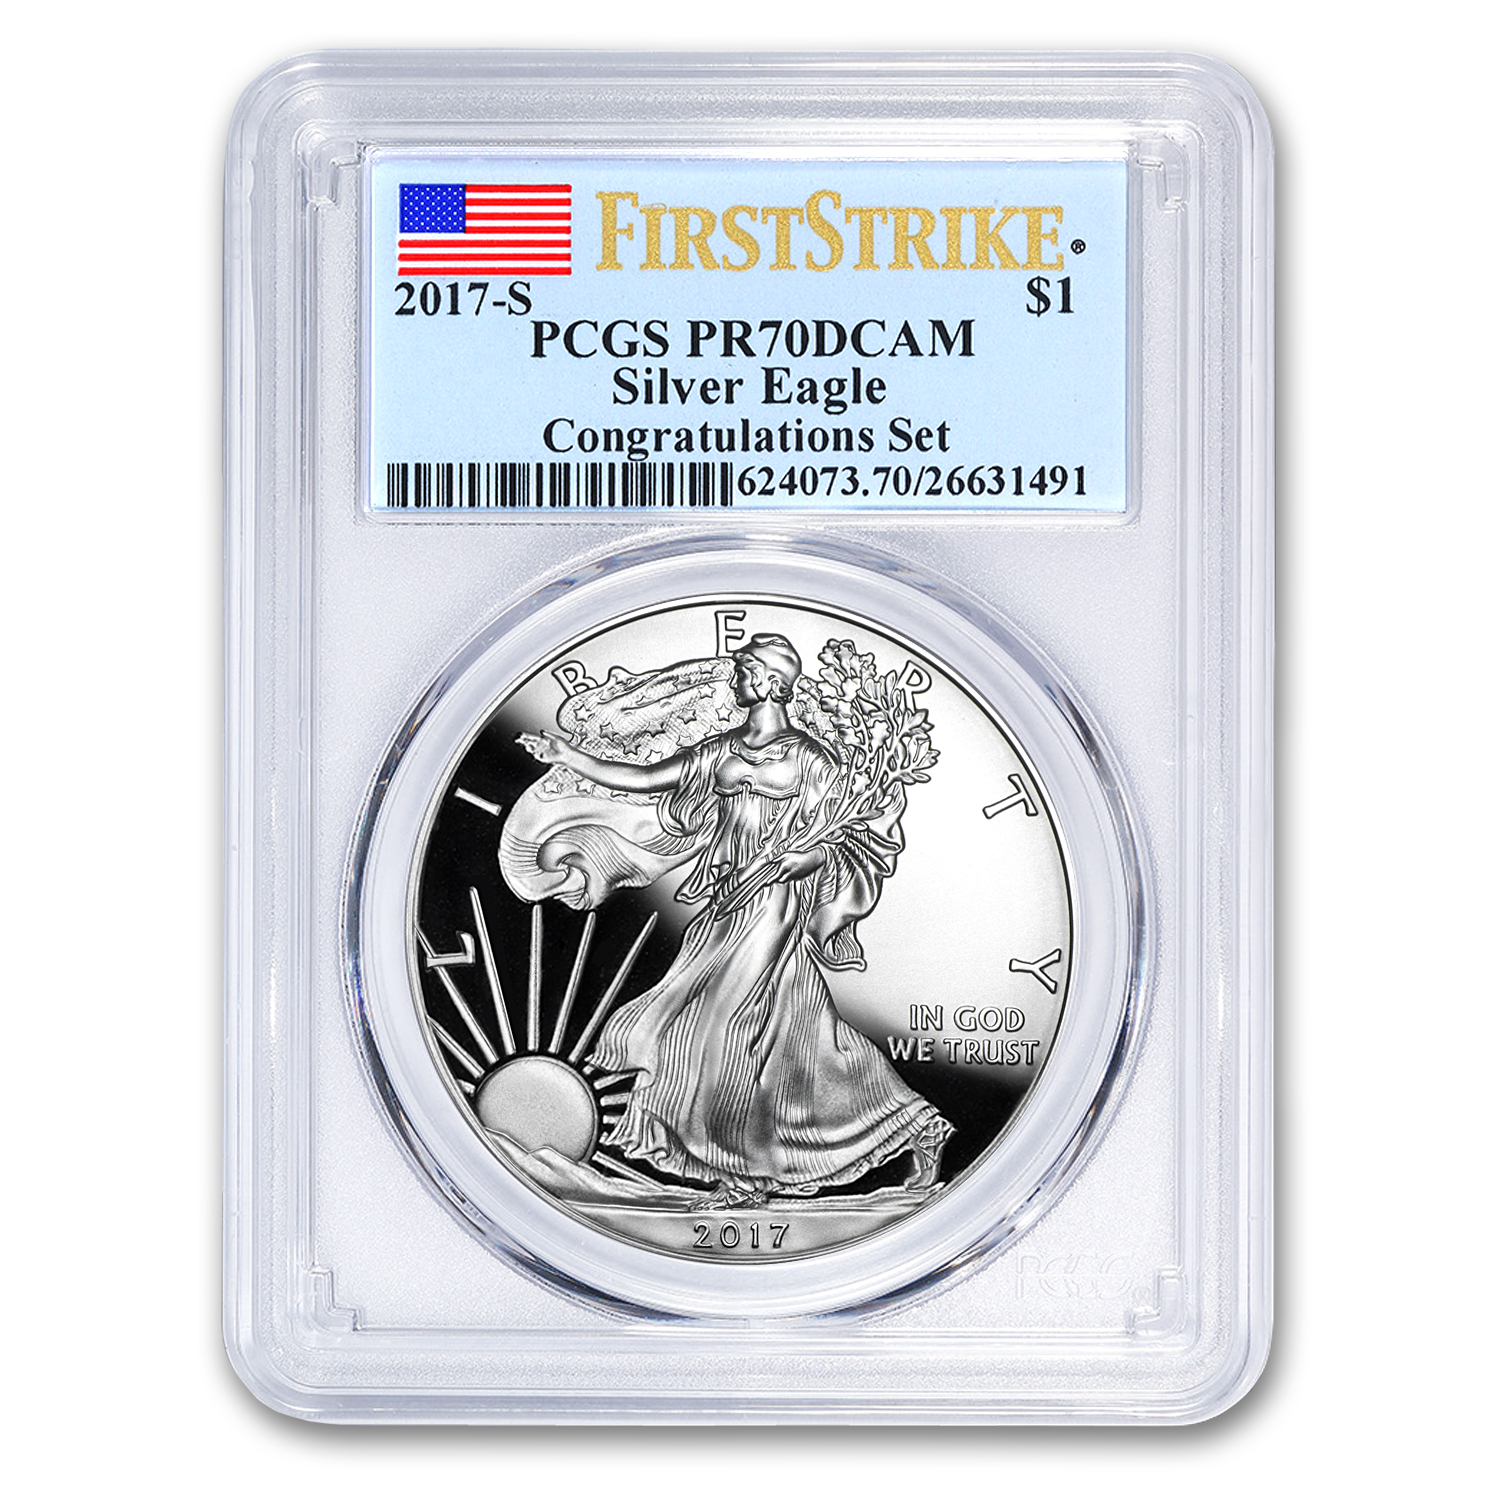 2017-S Proof Silver American Eagle PR-70 PCGS (First Strike)